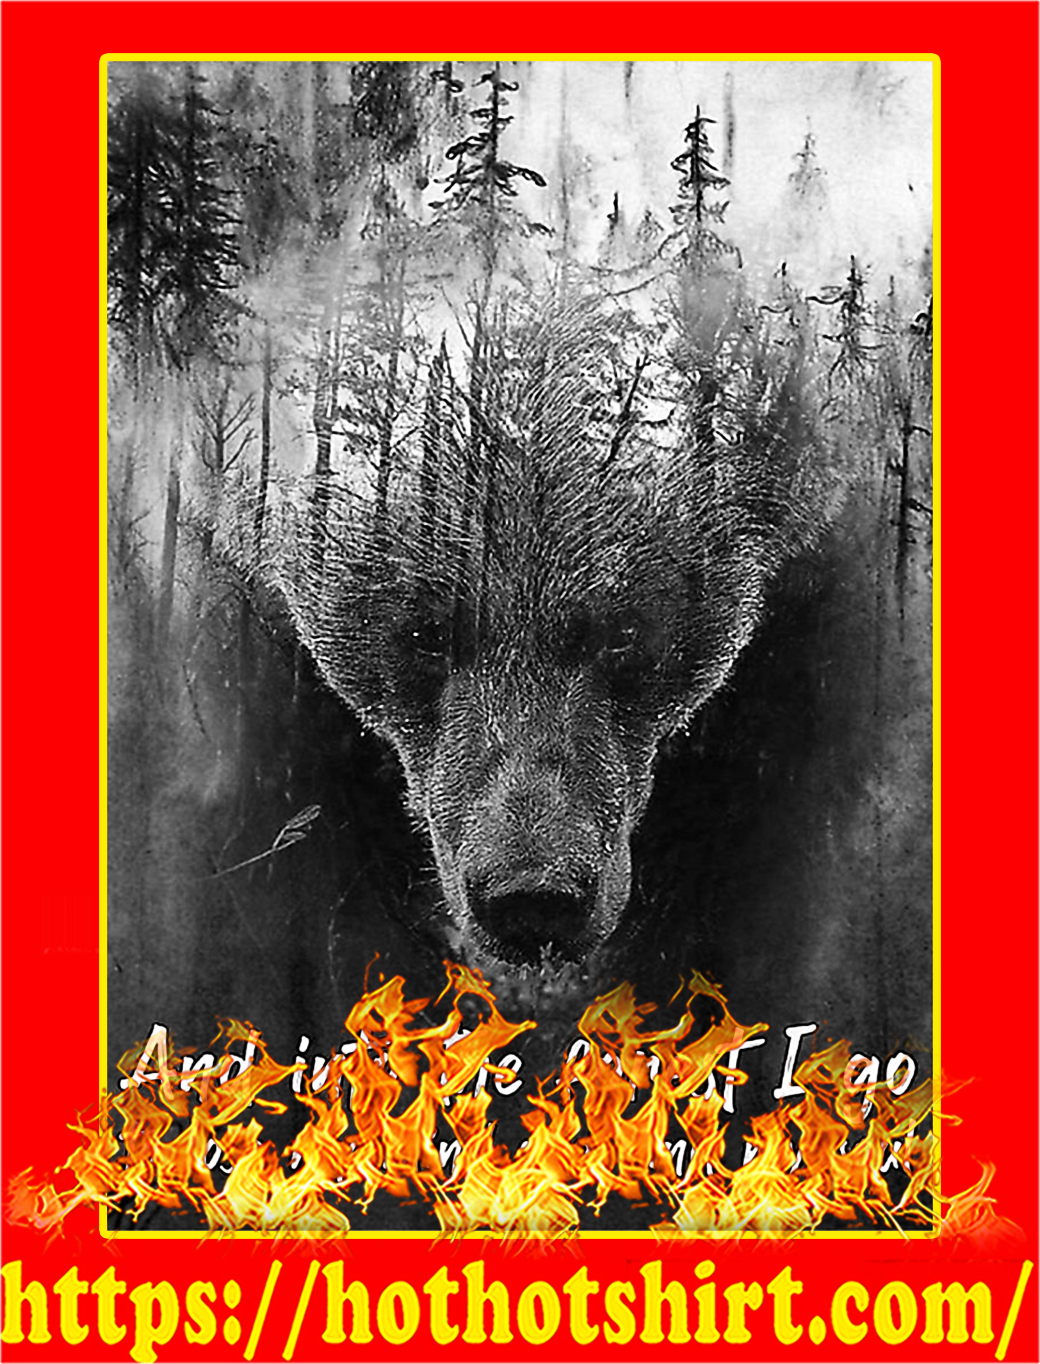 Bear and into the forest I go poster - A3